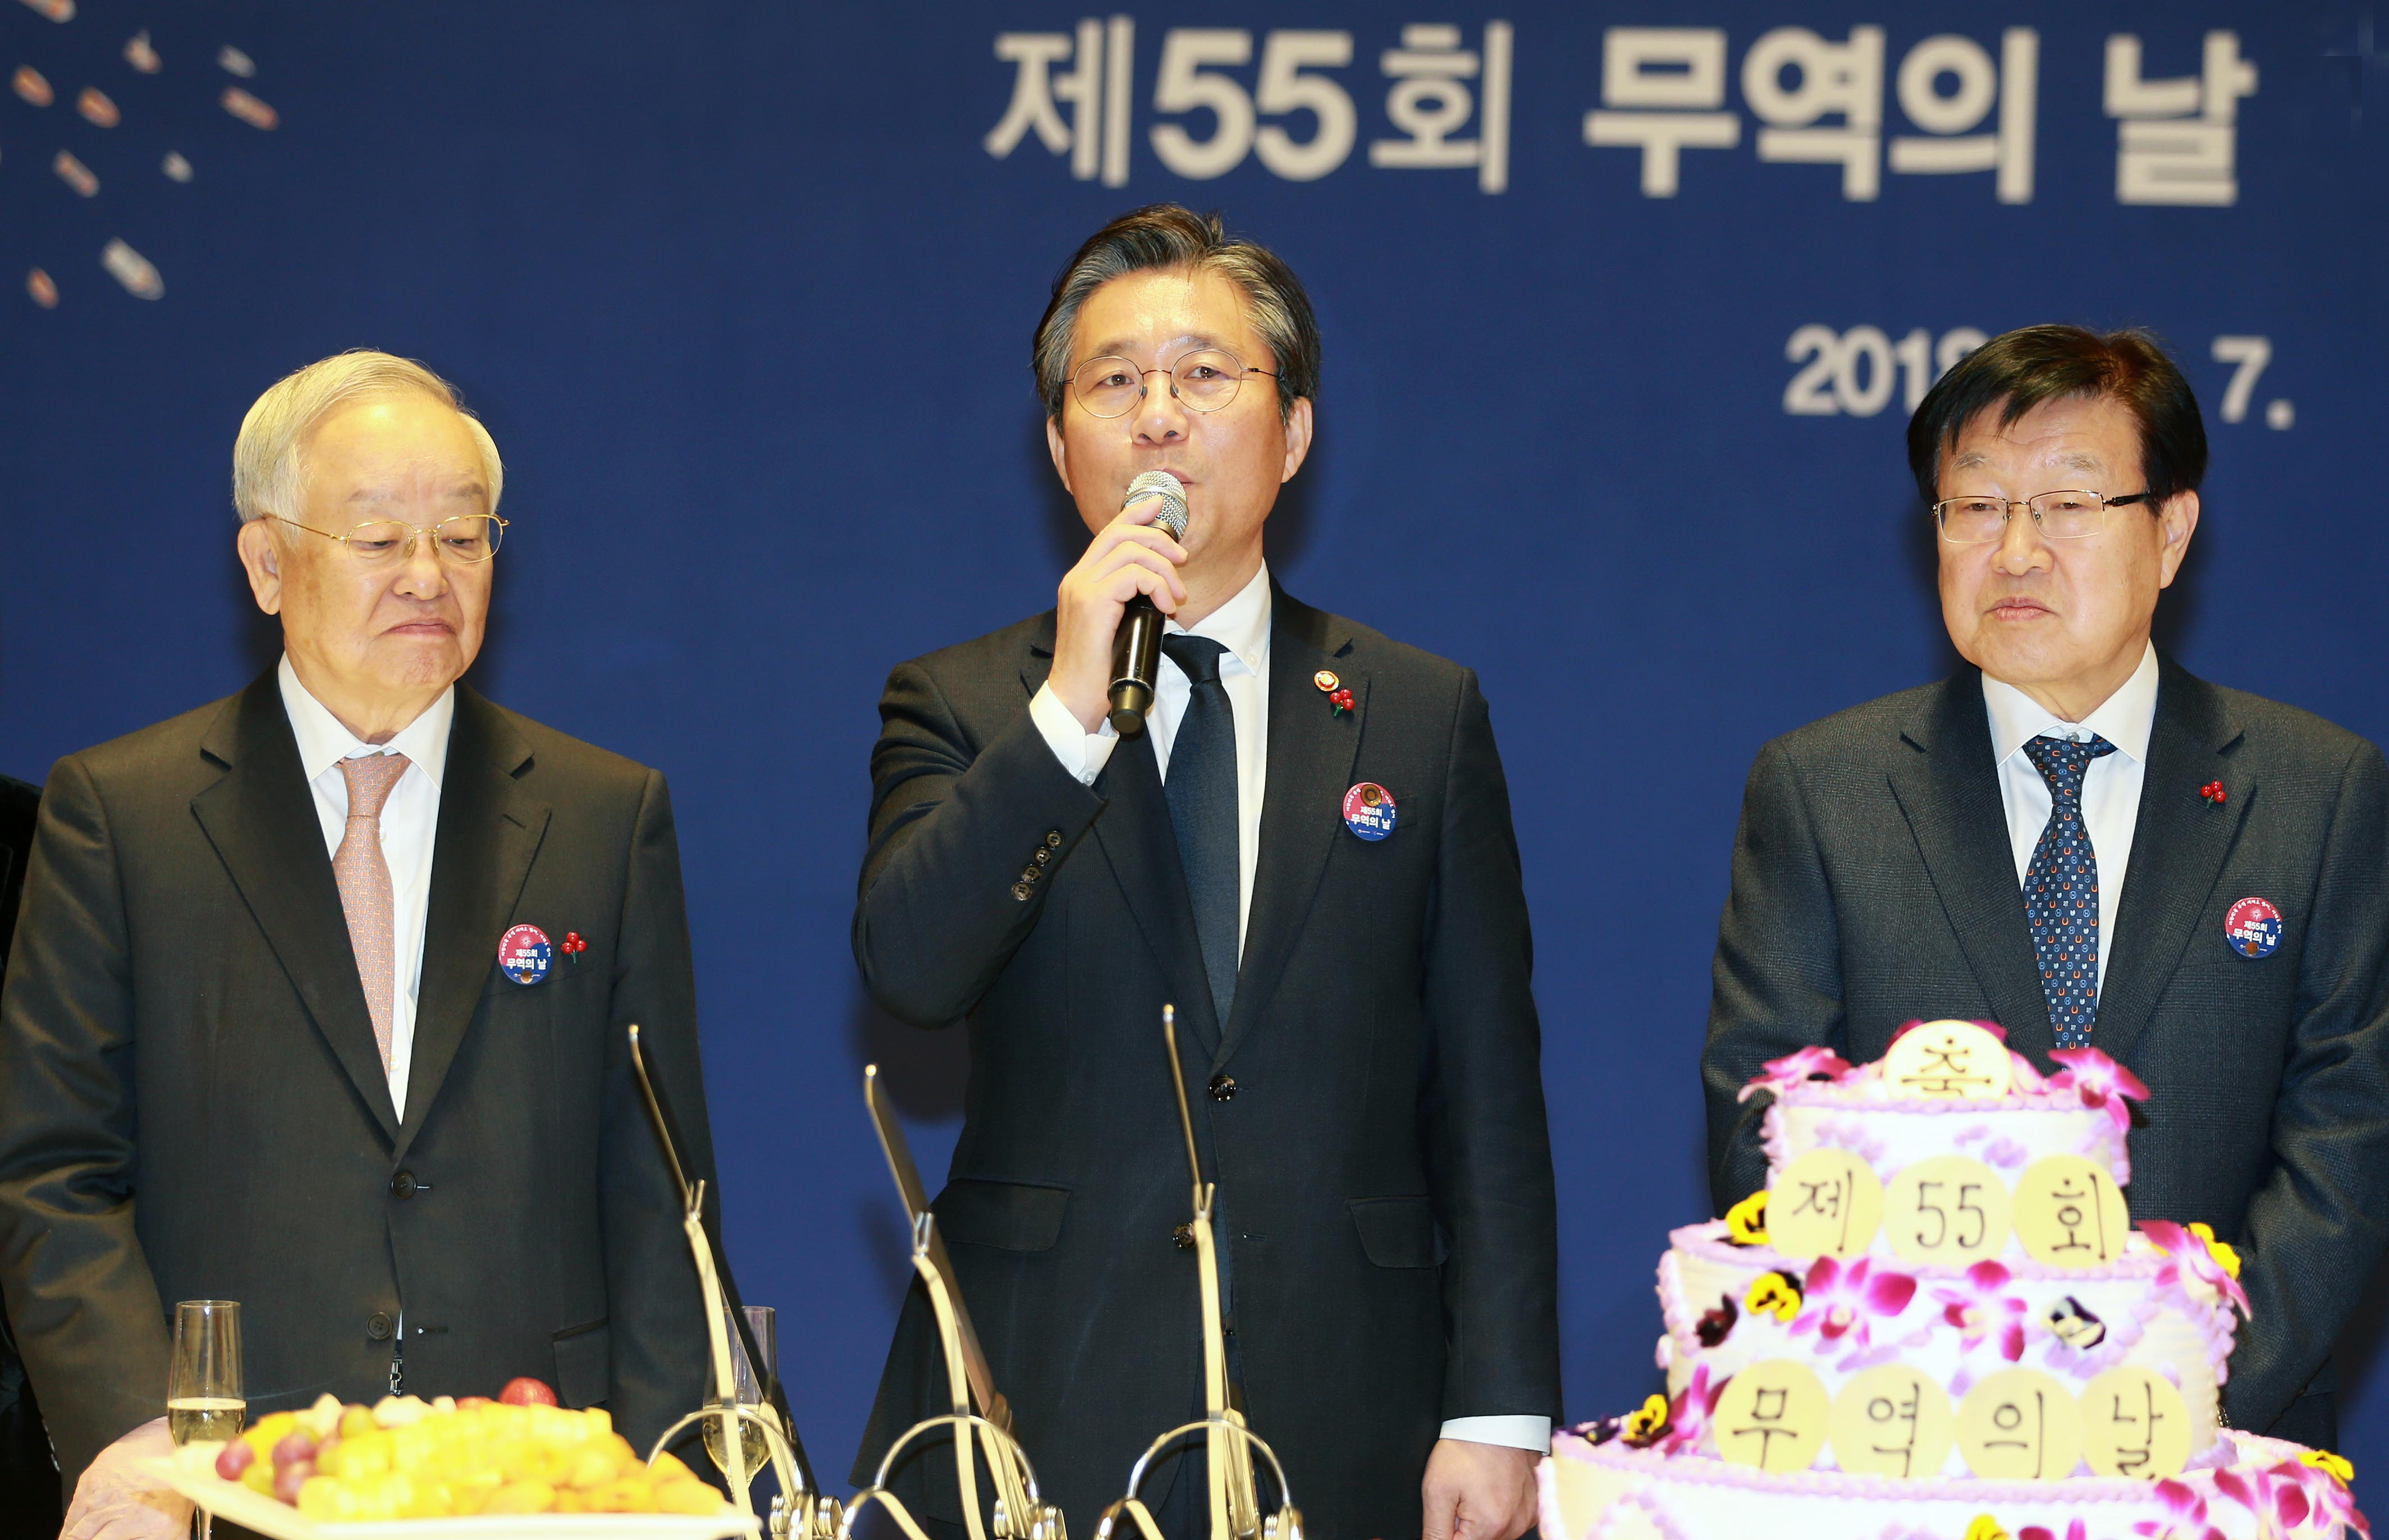 Minister Sung attends Korea's 55th Trade Day Ceremony  Image 0